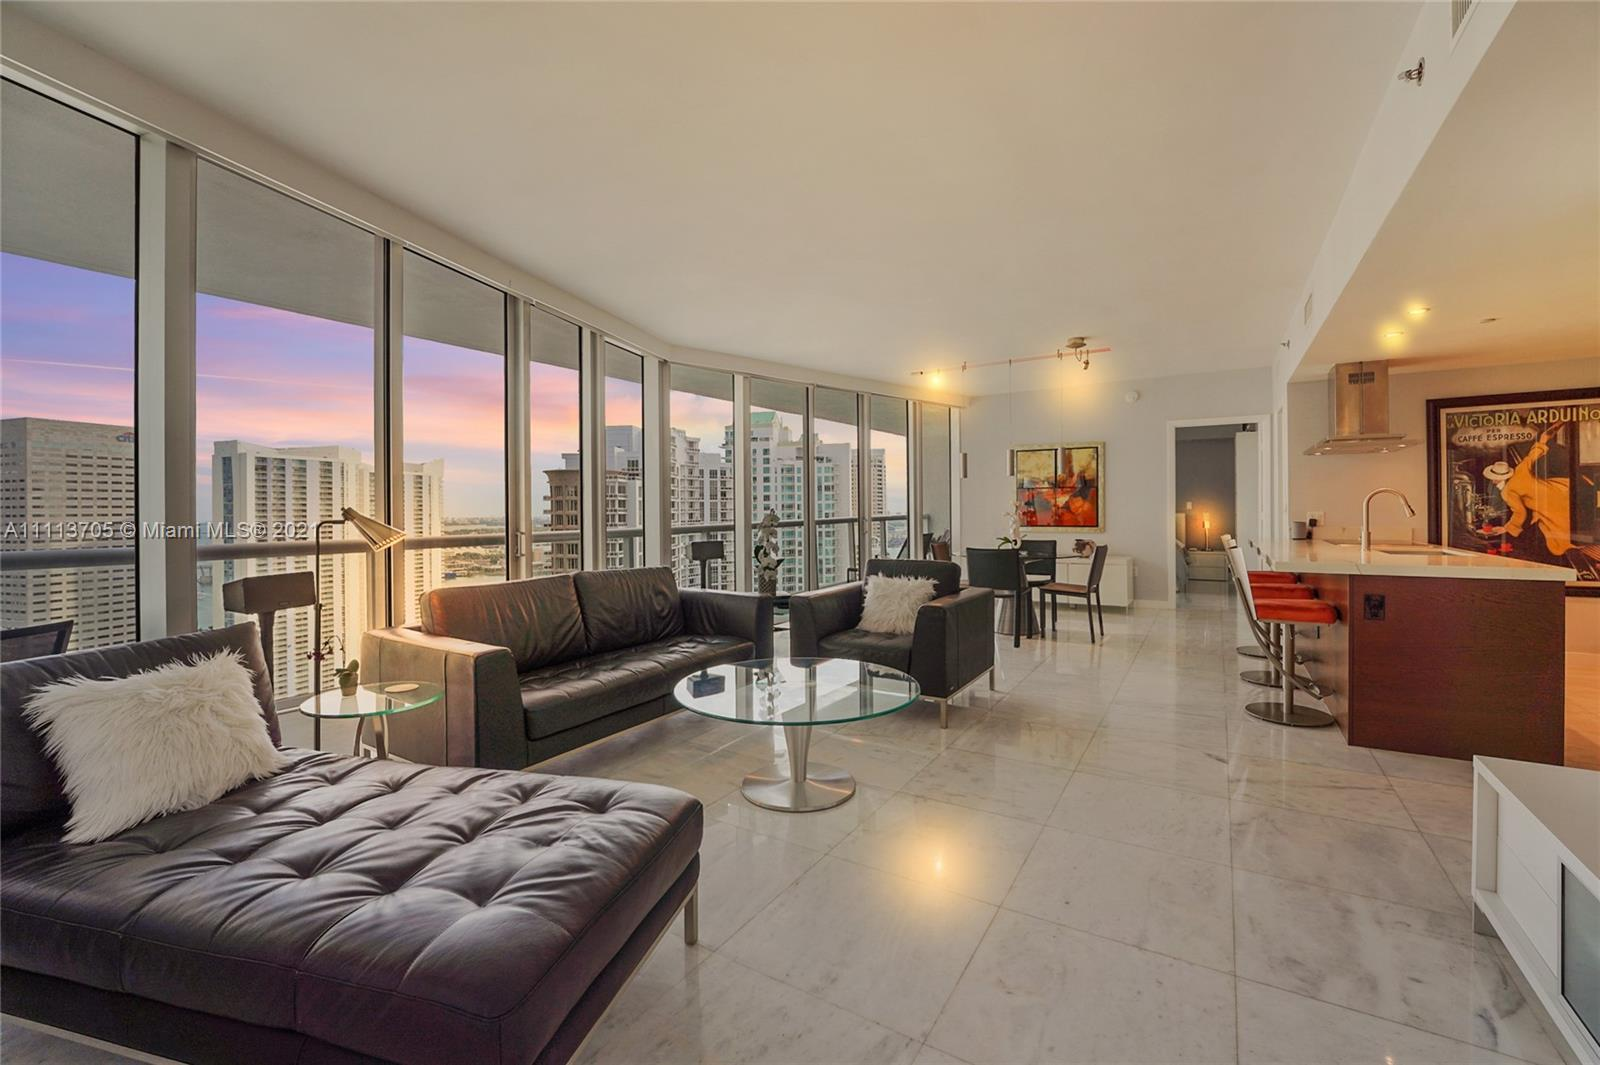 Immaculate & unique 2 bedroom/2 bathroom PLUS DEN w/ stunning water views of Biscayne Bay from 15 fl